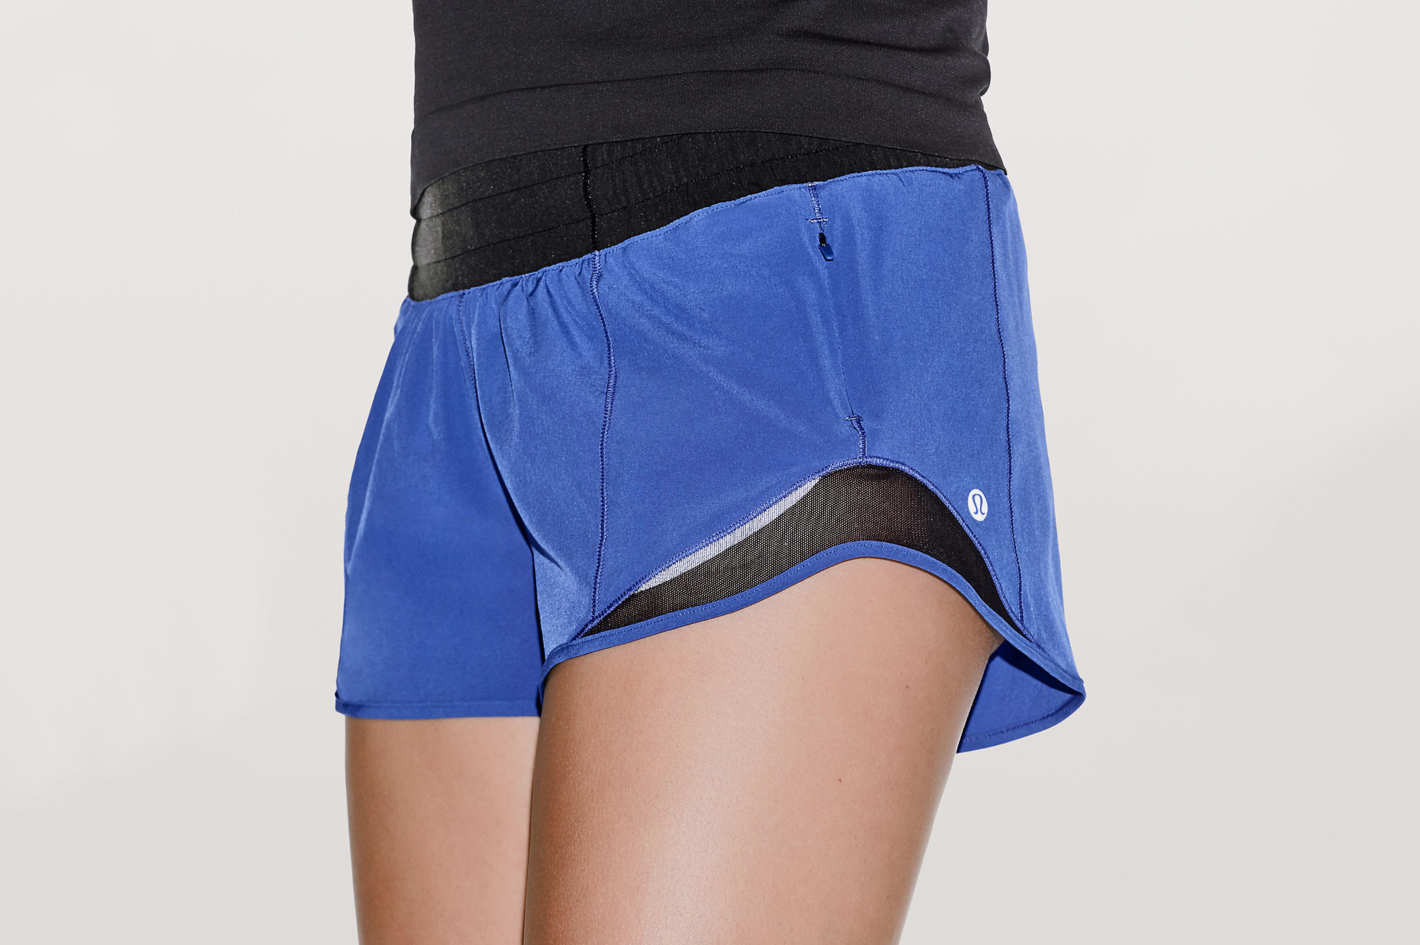 Lululemon Hotty Hot Short II